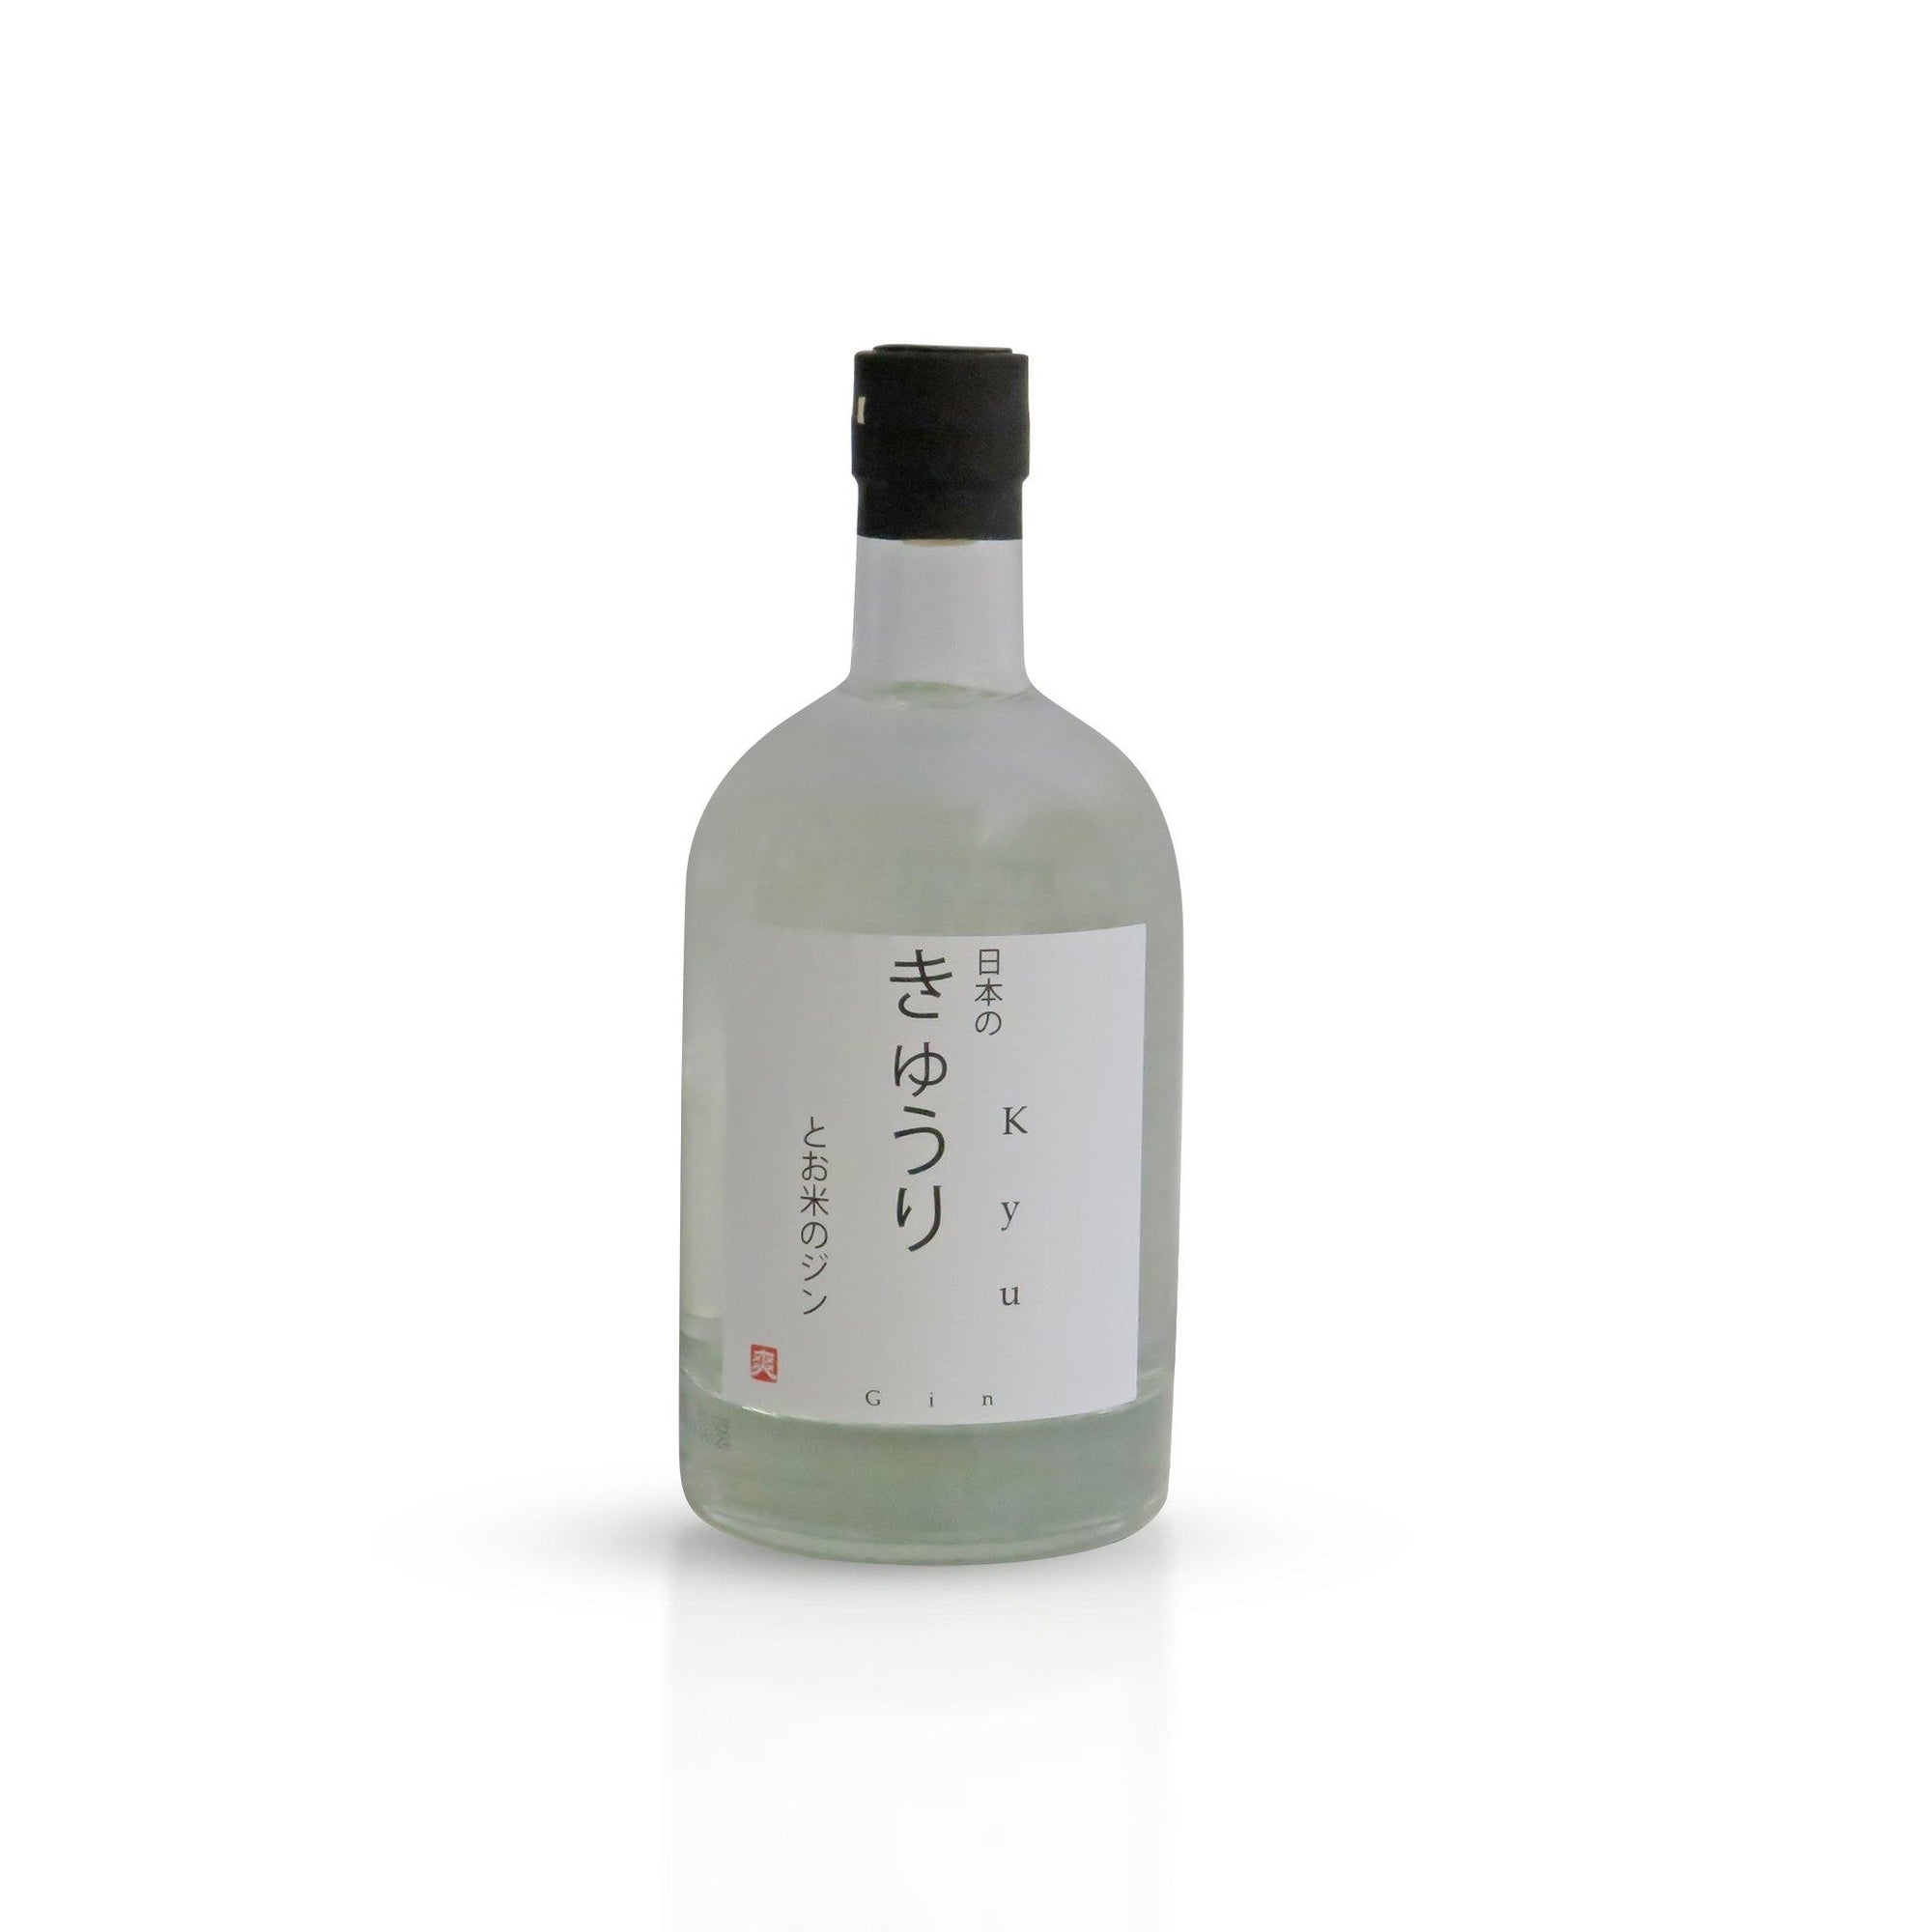 Kyu Japanese Gin 500ml - Asian Harvest